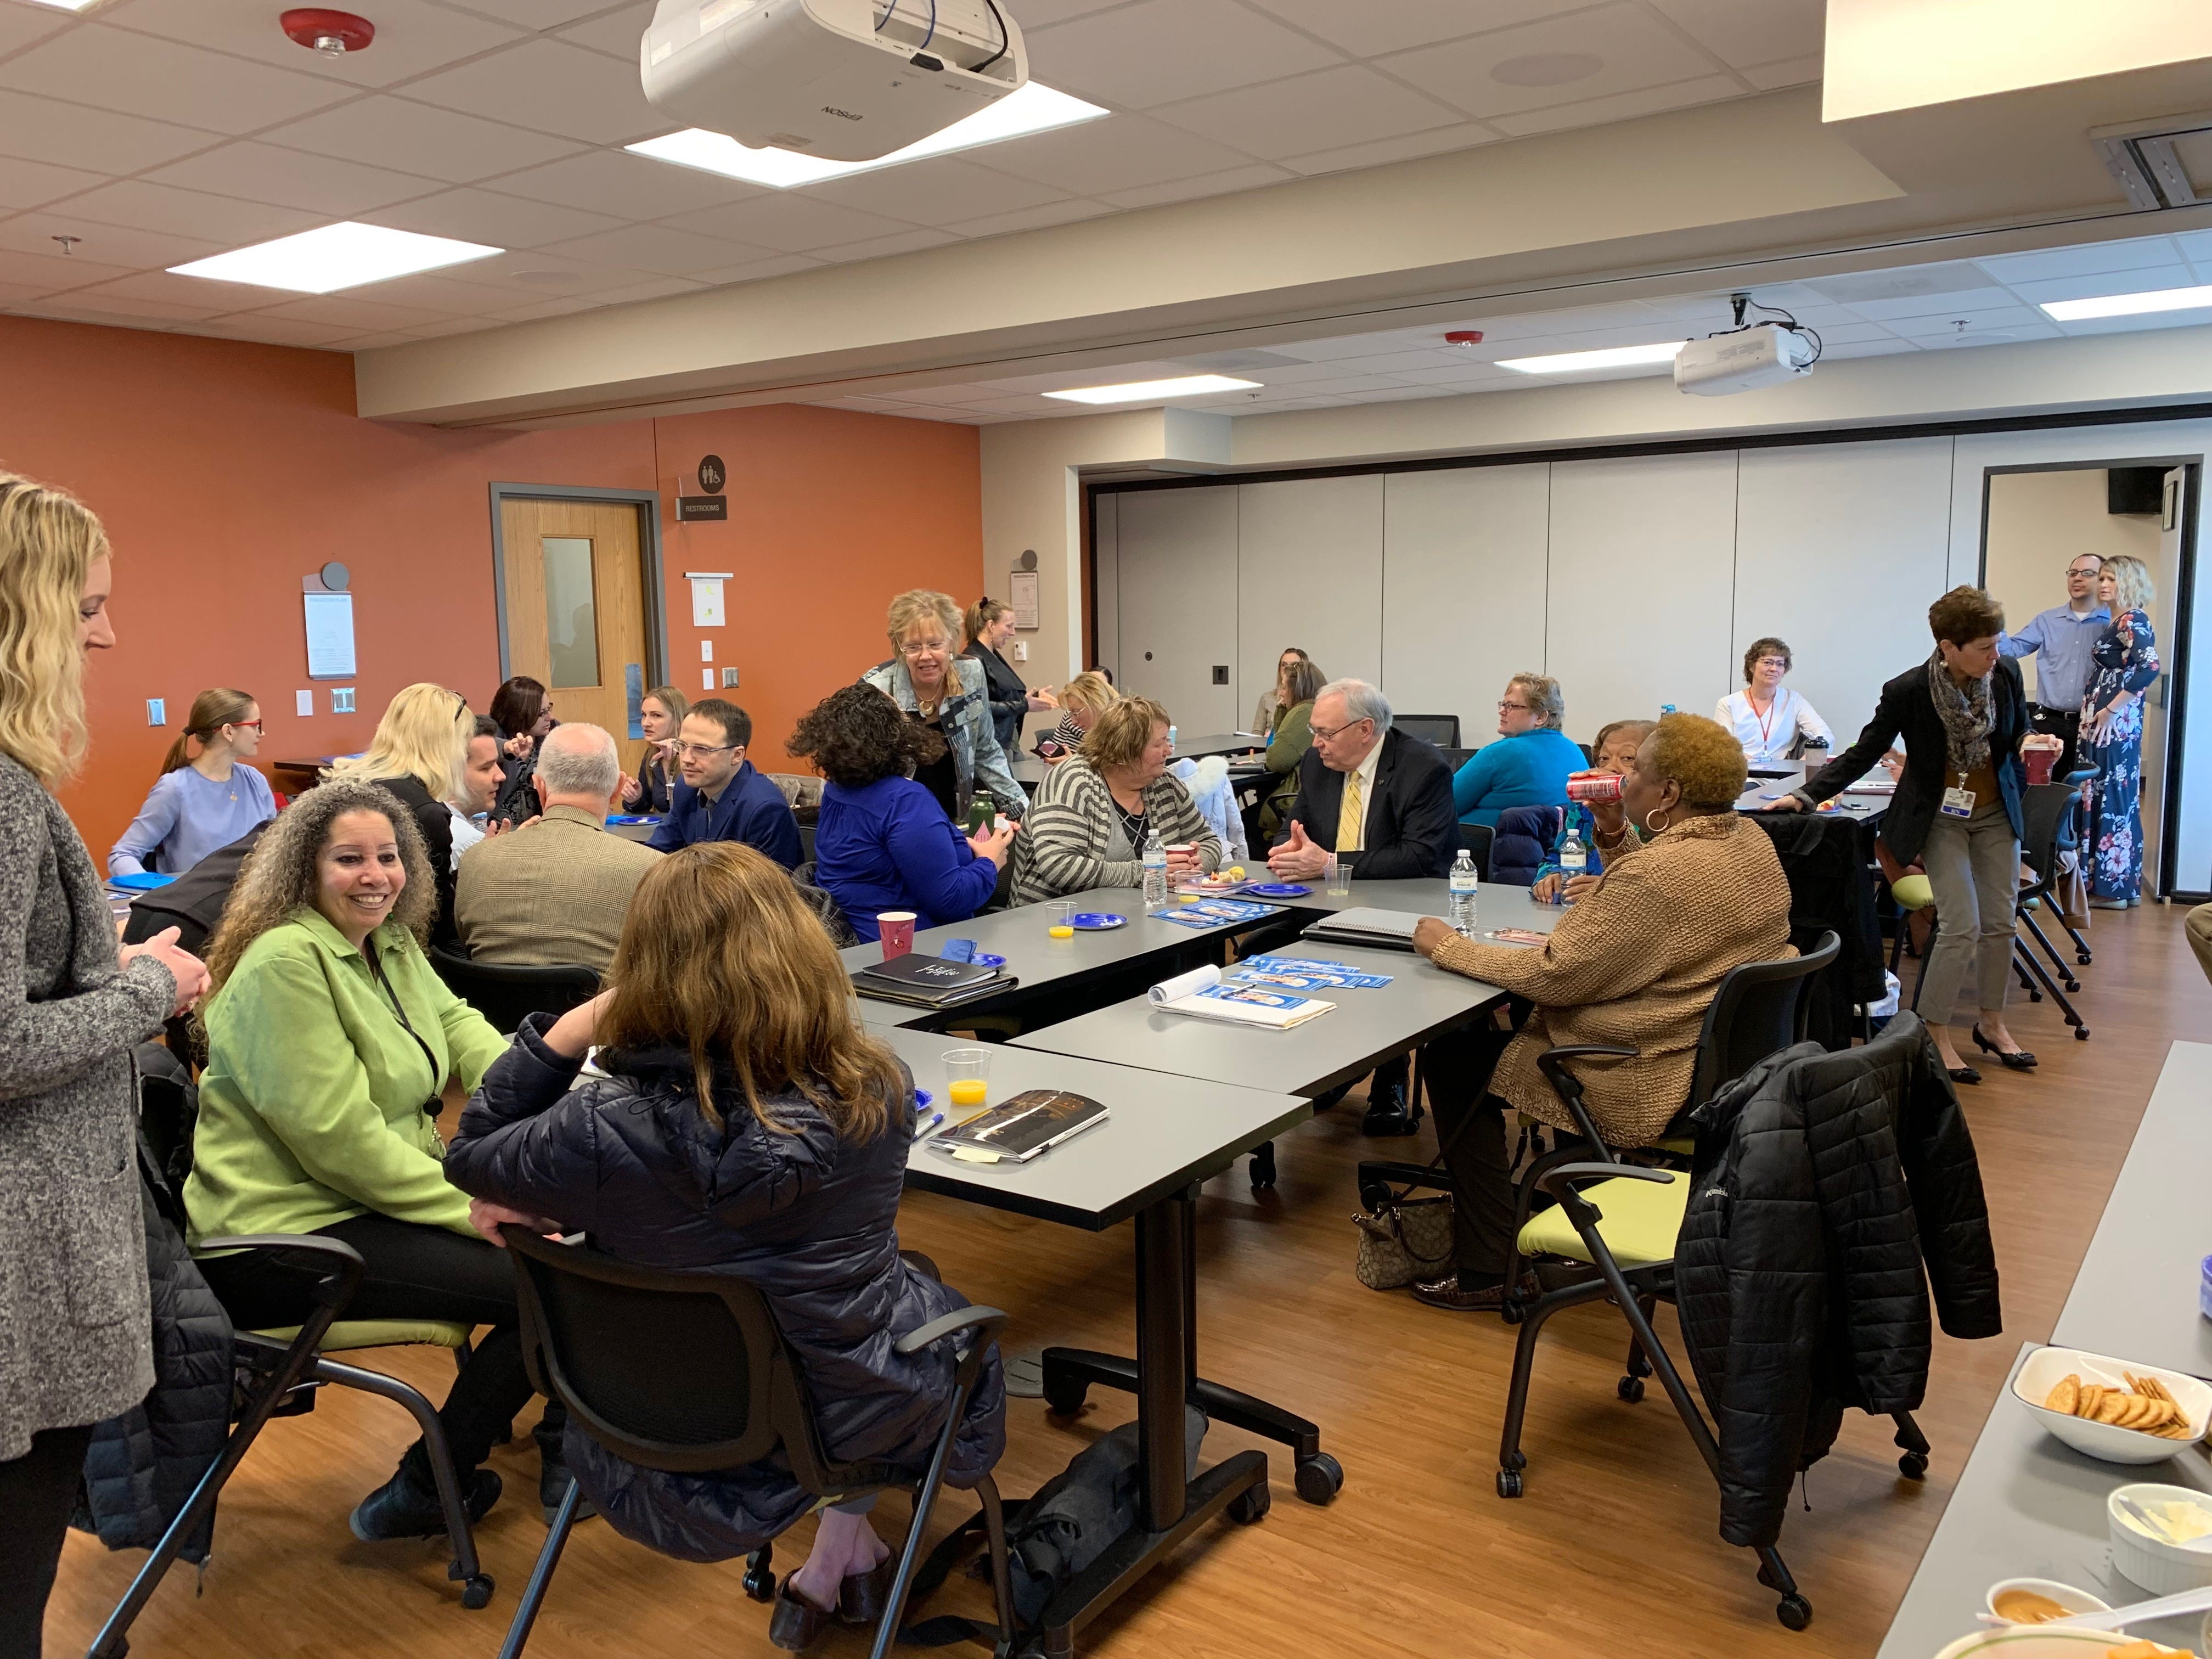 Round table at Lakeshore Community Health with the delegates with reps from Freedom Cry, St. Nicholas hospital, MHA, Sheboygan Area School District, Department of Health and Human Services, Sheboygan Police Department, Love Inc., Grace Episcopal Church, Victim Witness and United Way.